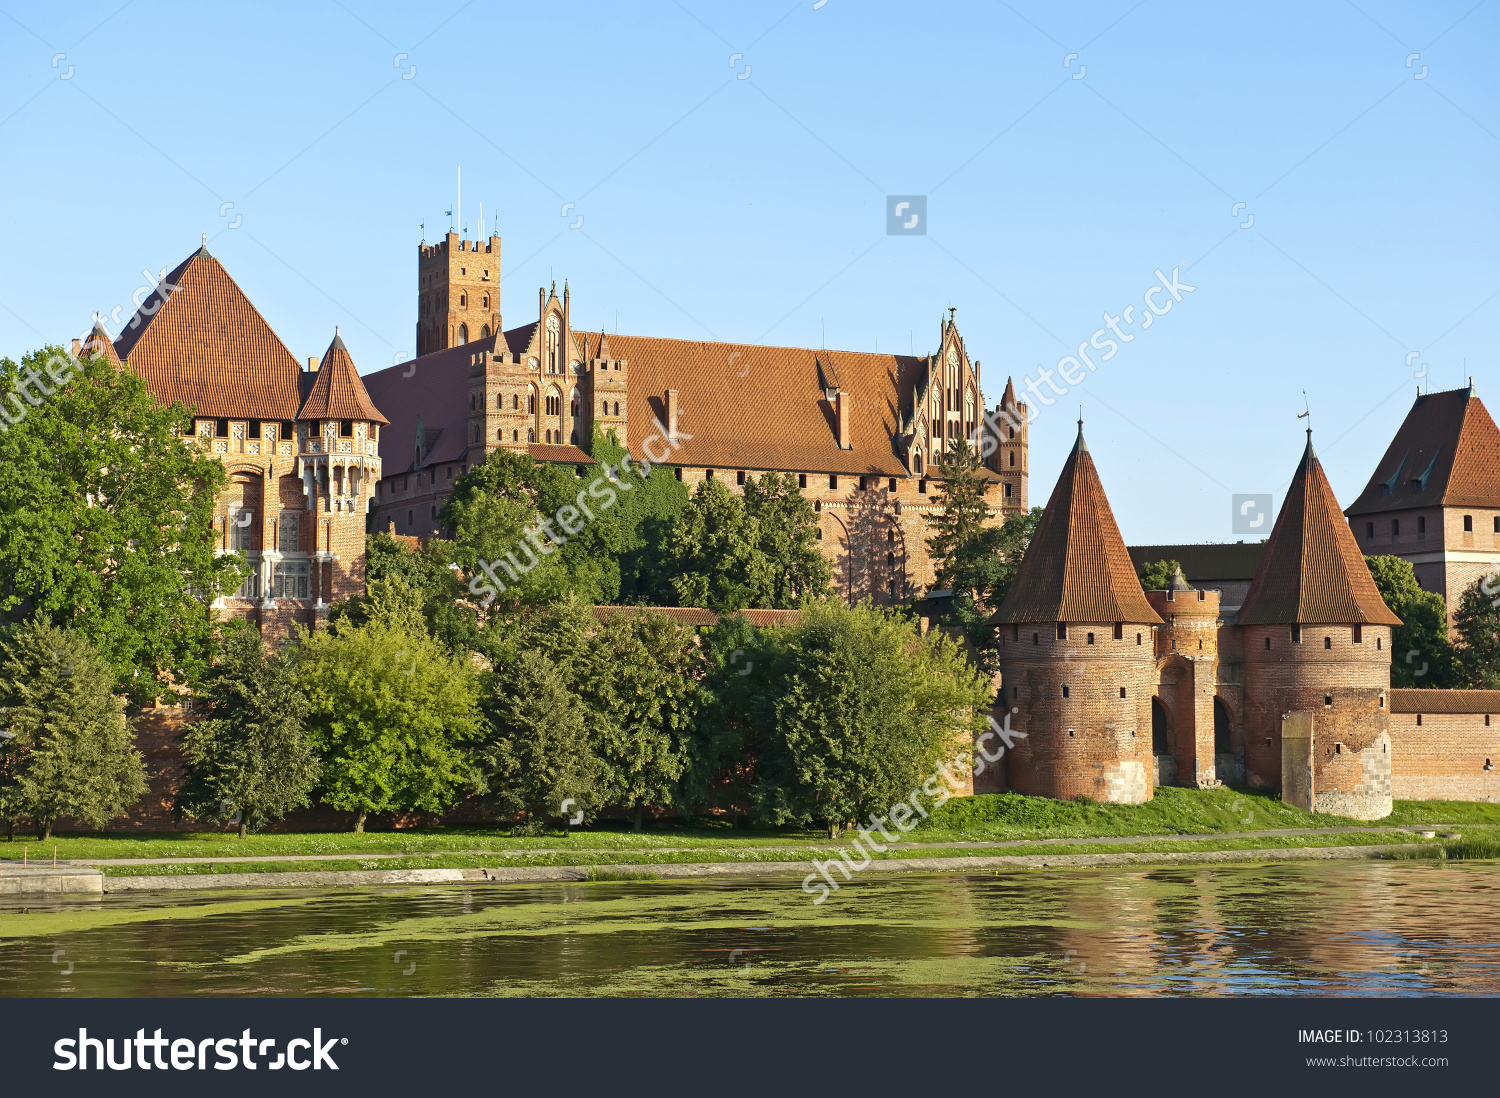 Teutonic Knights' Fortress In Malbork, Also Known As Marienburg.